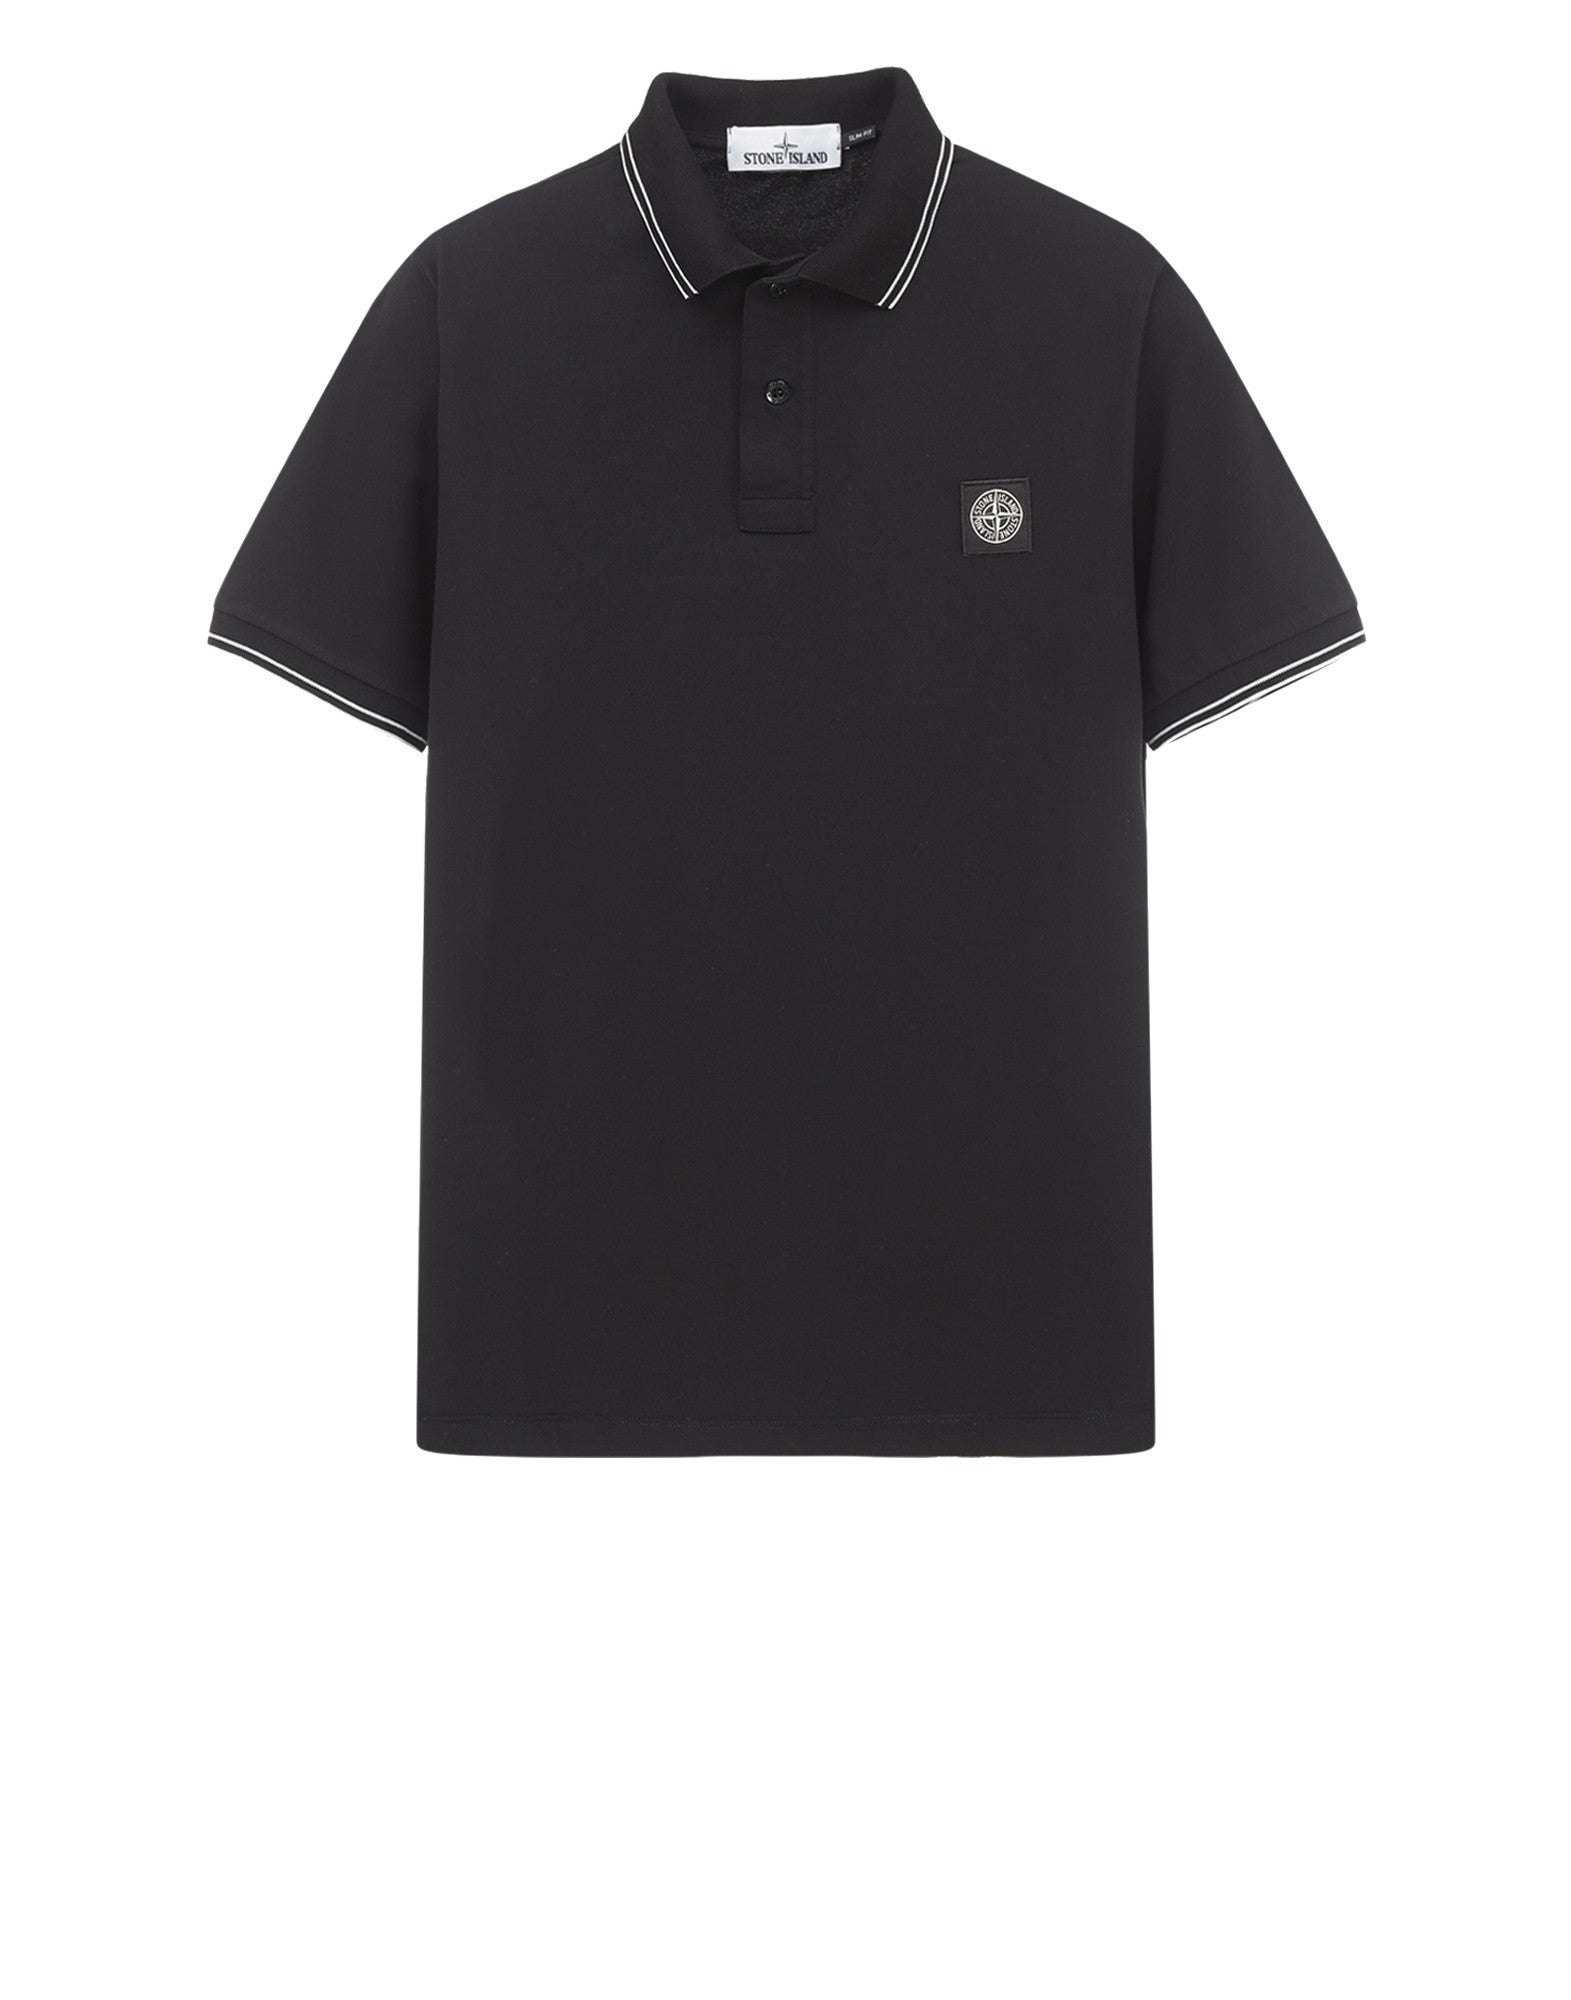 22S18 Patch Program Polo Shirt in Black